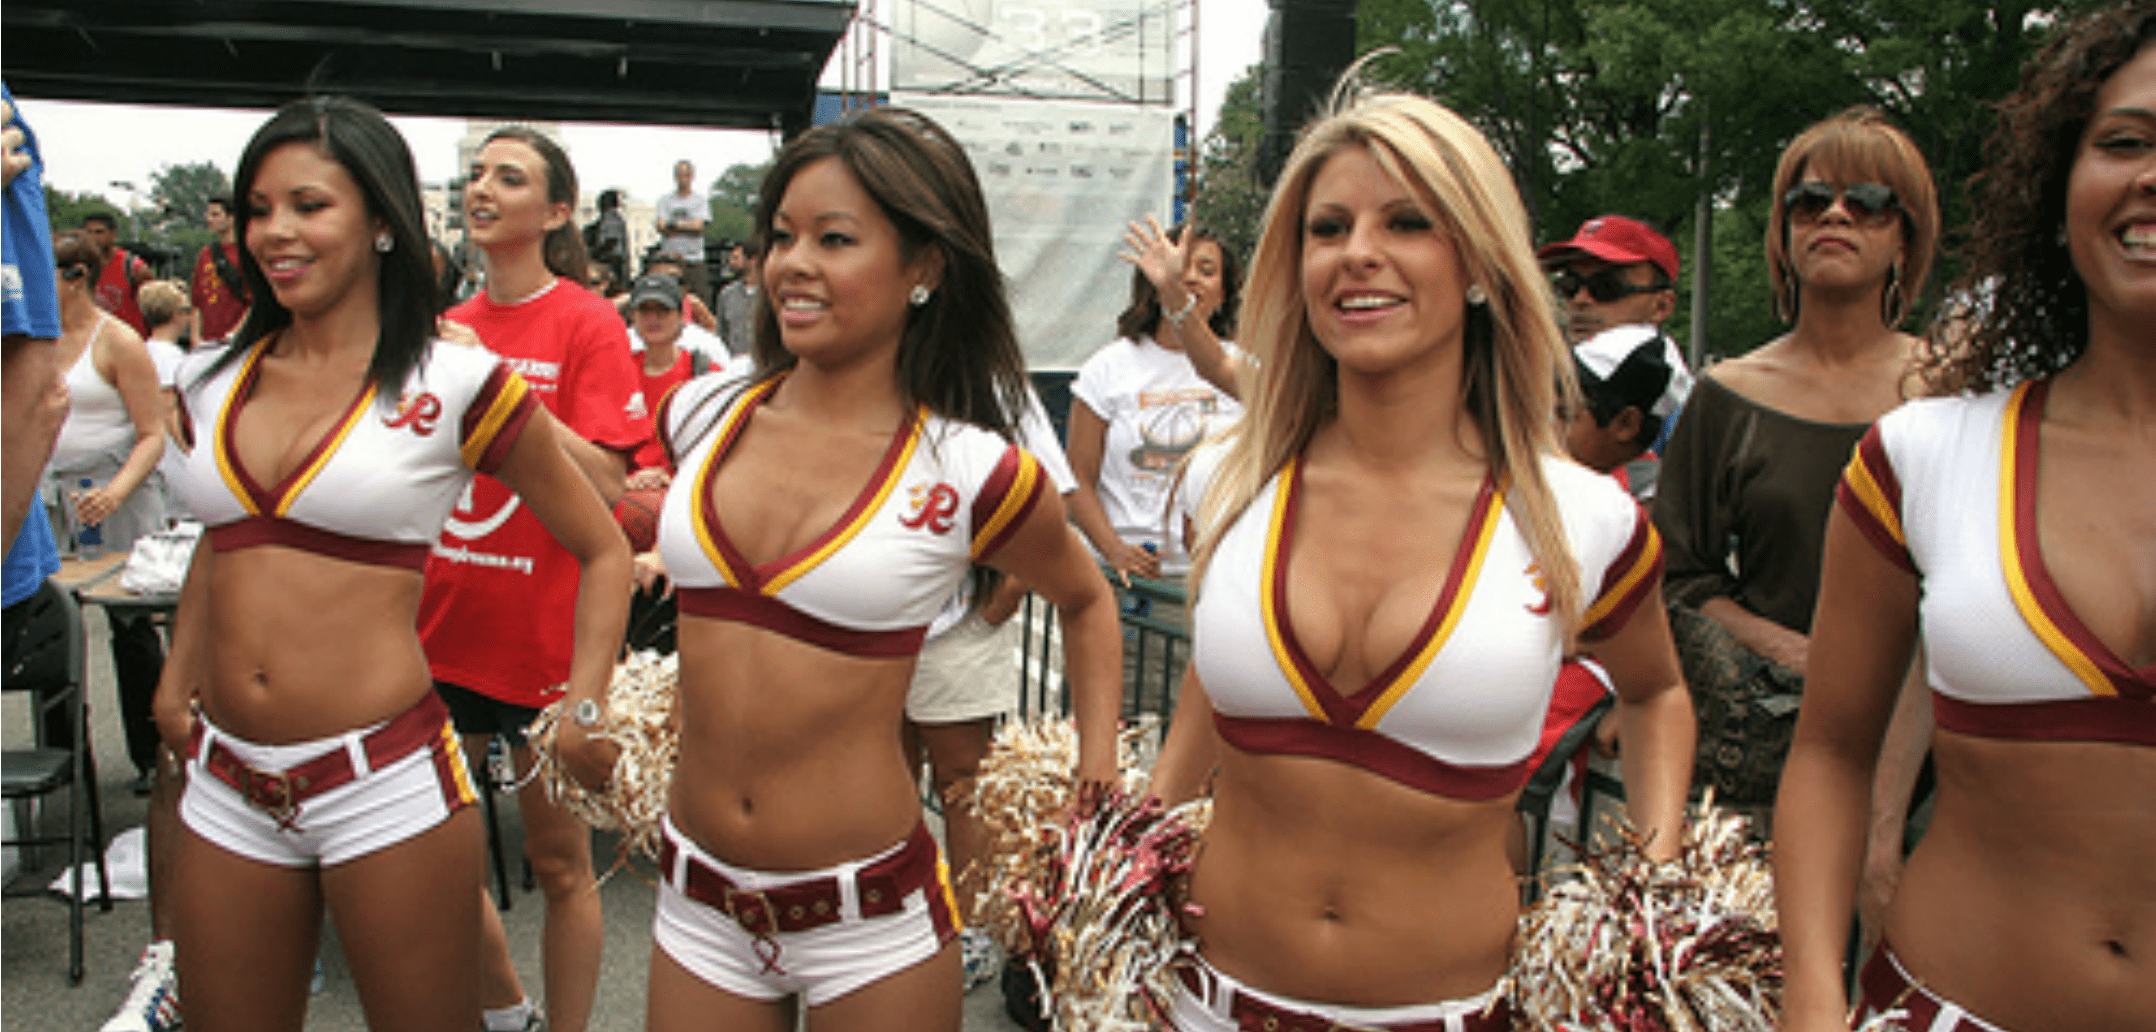 Free Monday Pick: Washington Redskins vs. New Orleans Saints